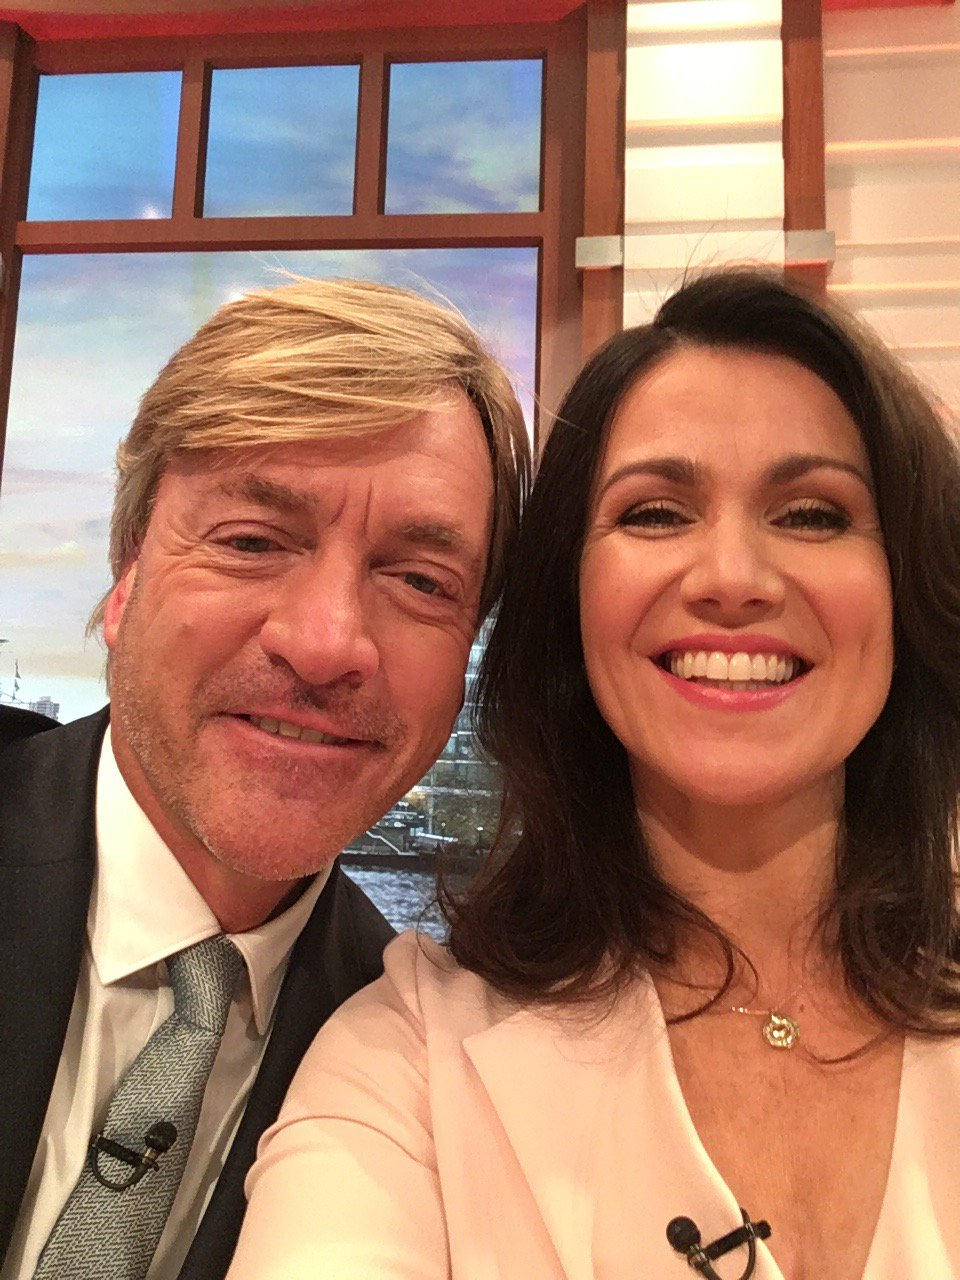 Thanks @richardm56 for keeping me company this week 👍🏼@gmb https://t.co/vKPfxrDY3R